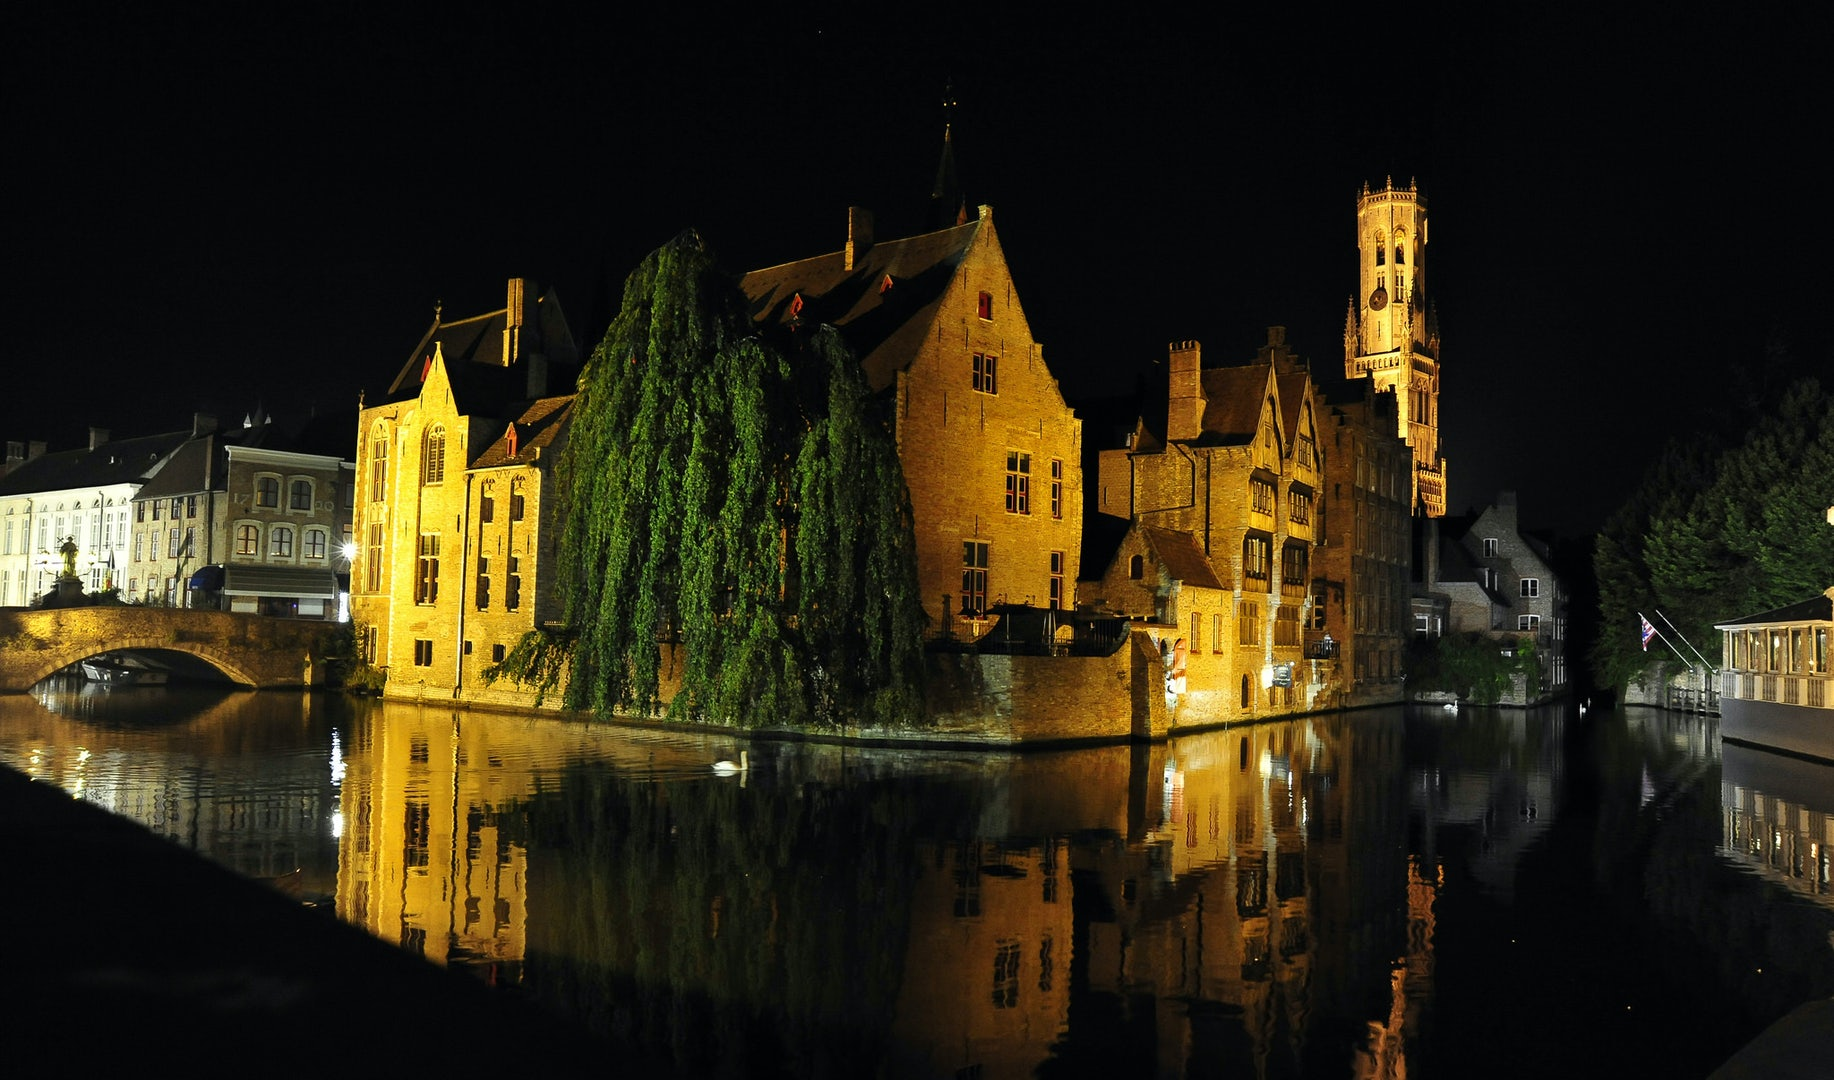 the canals of Bruges by night